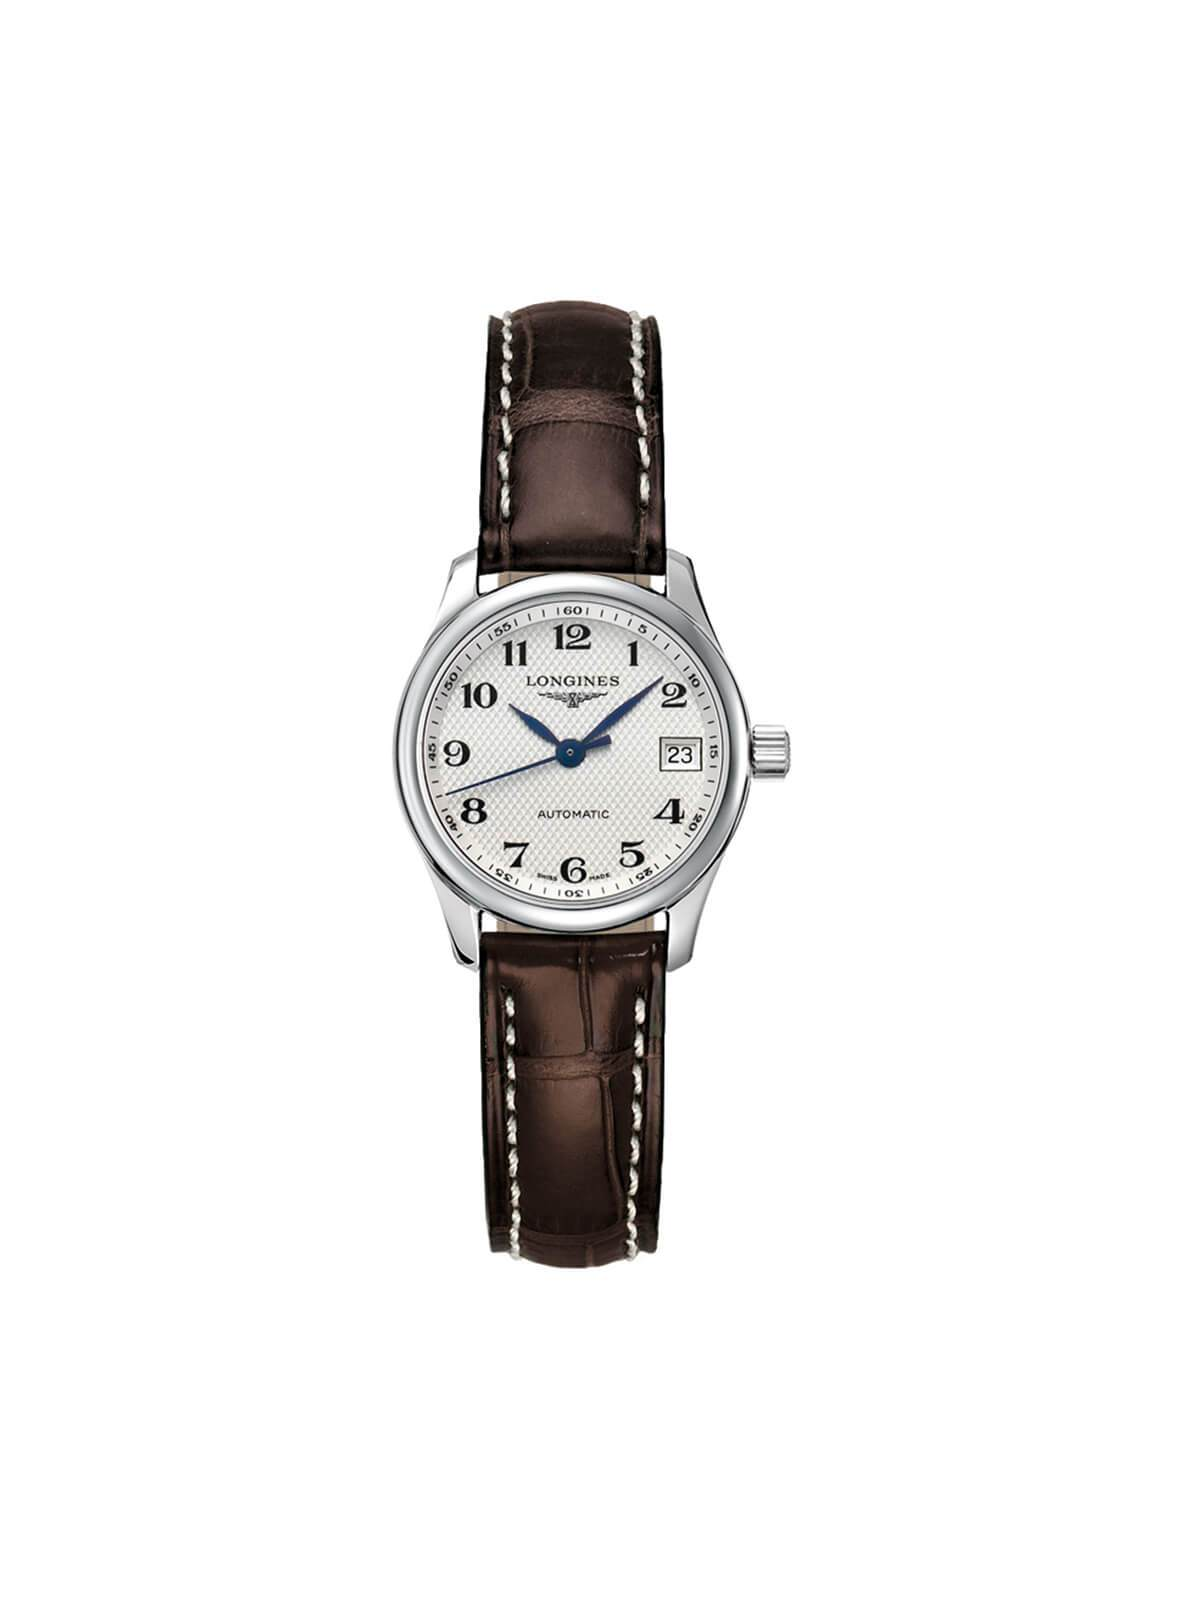 L2.128.4.78.3 Longines Ladies 25.5mm Master Collection Steel Automatic Watch on Leather Strap